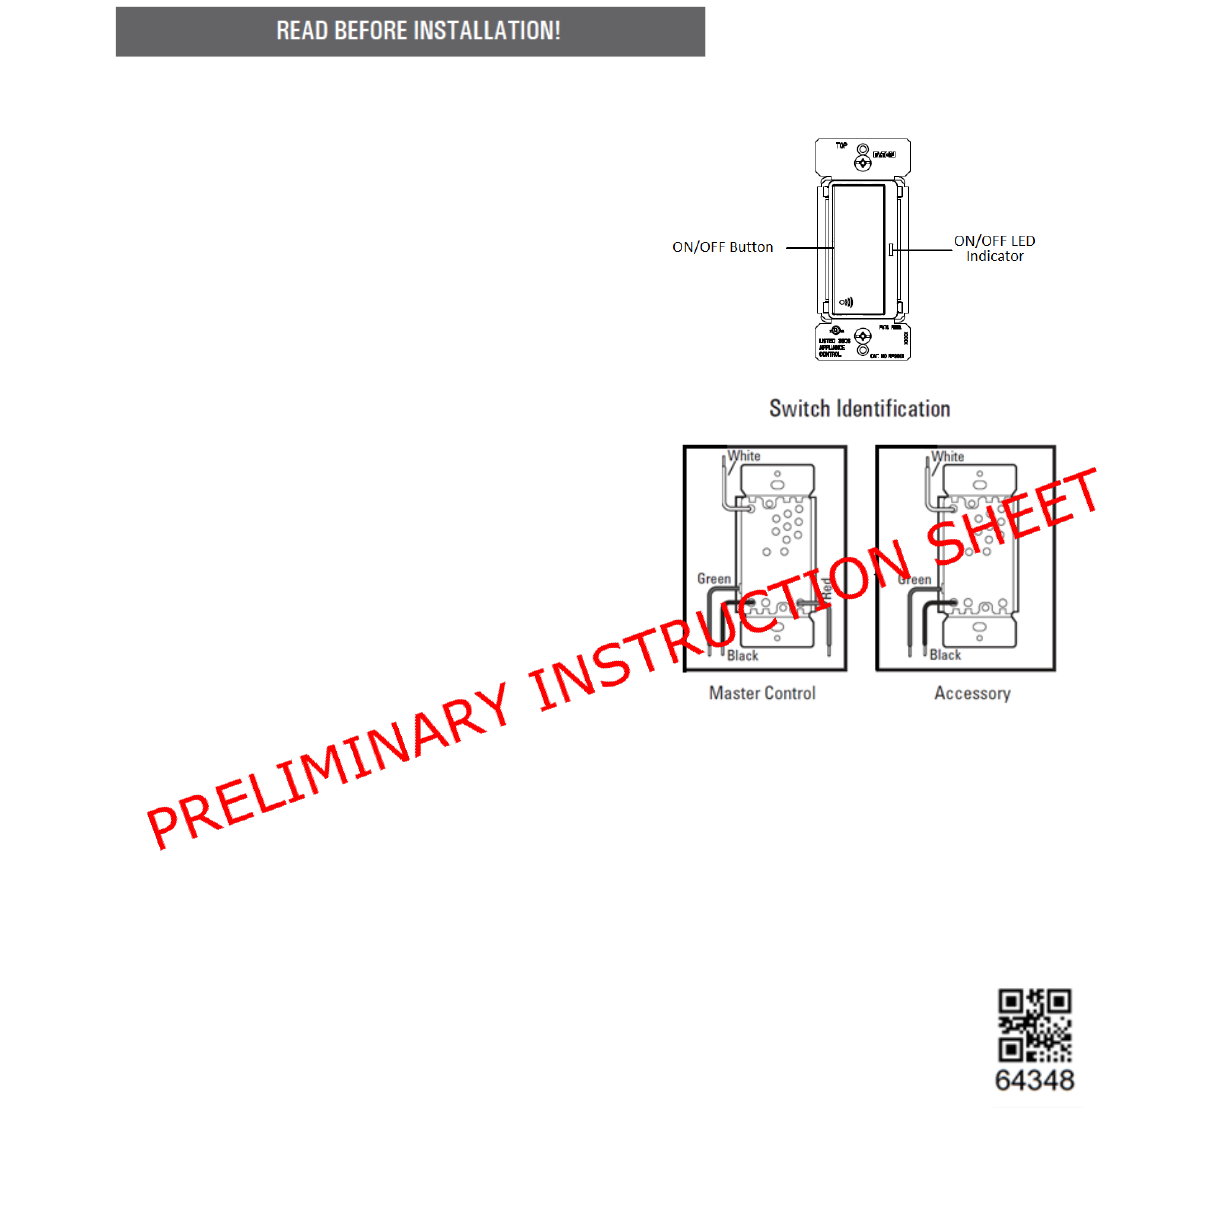 Cooper Wiring Devices Rf9617 Z Wave Plus Accessory Switch User Diagrams Users Manual